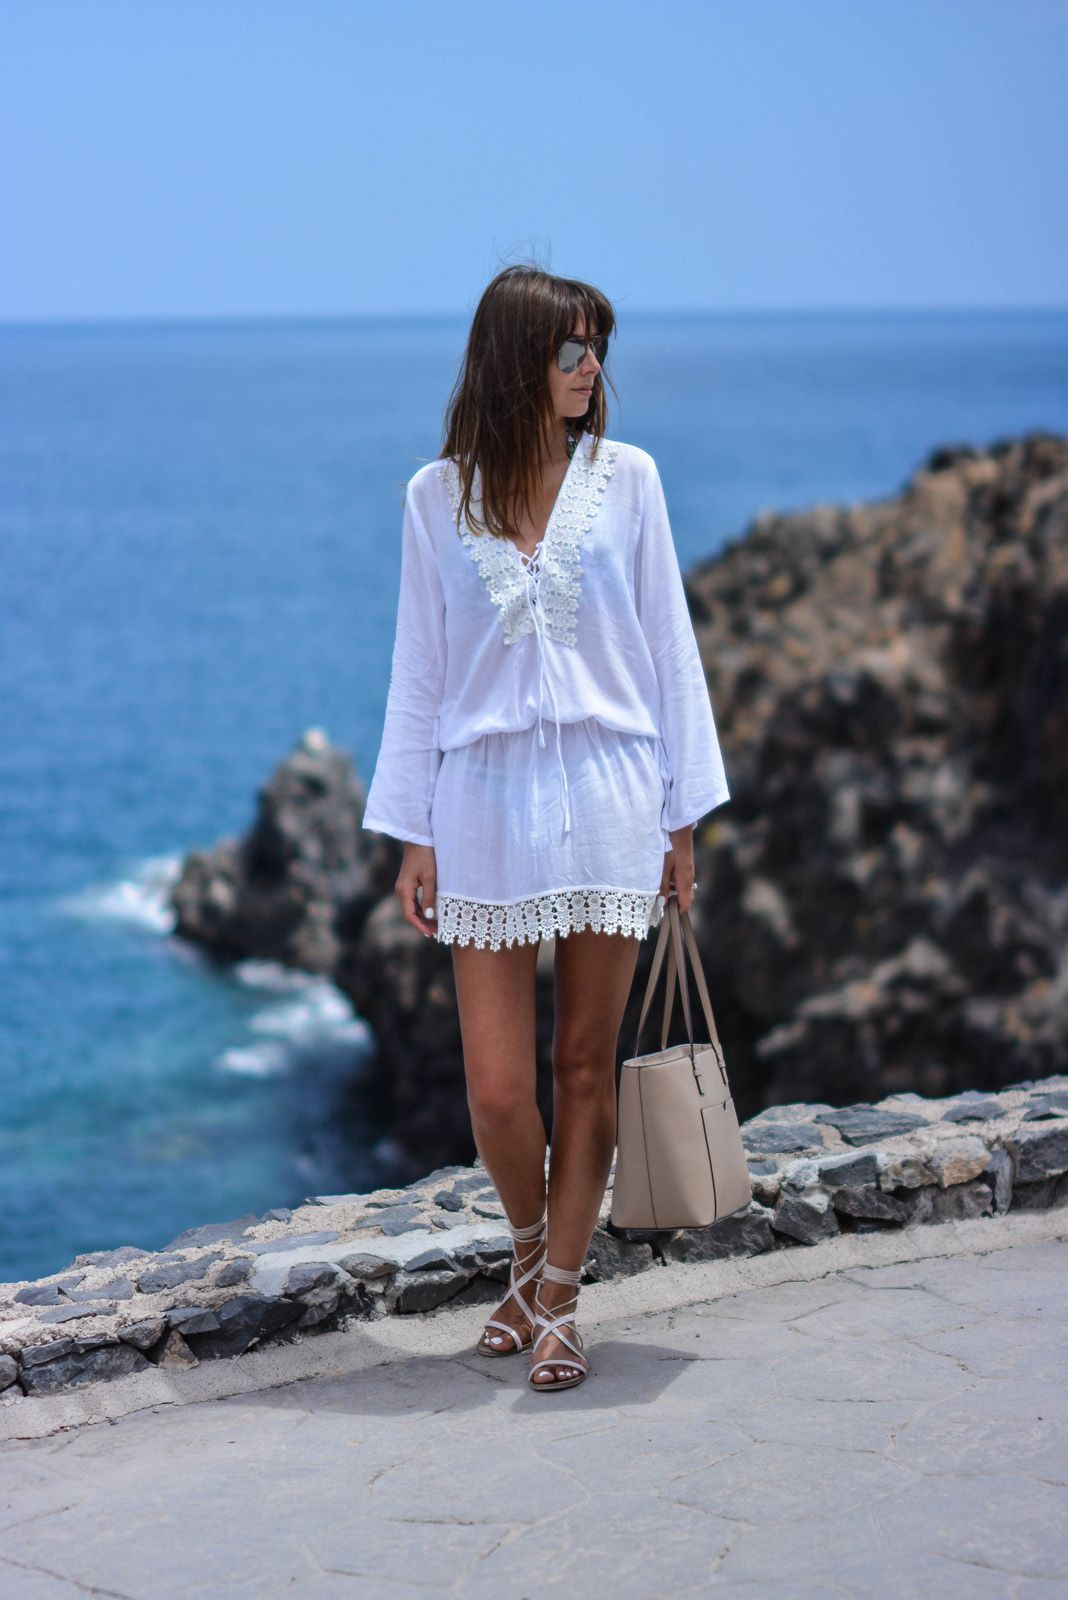 a5decc93f67 EJSTYLE - Emma Hill wears Cool Change Chloe Romance white tunic from ...